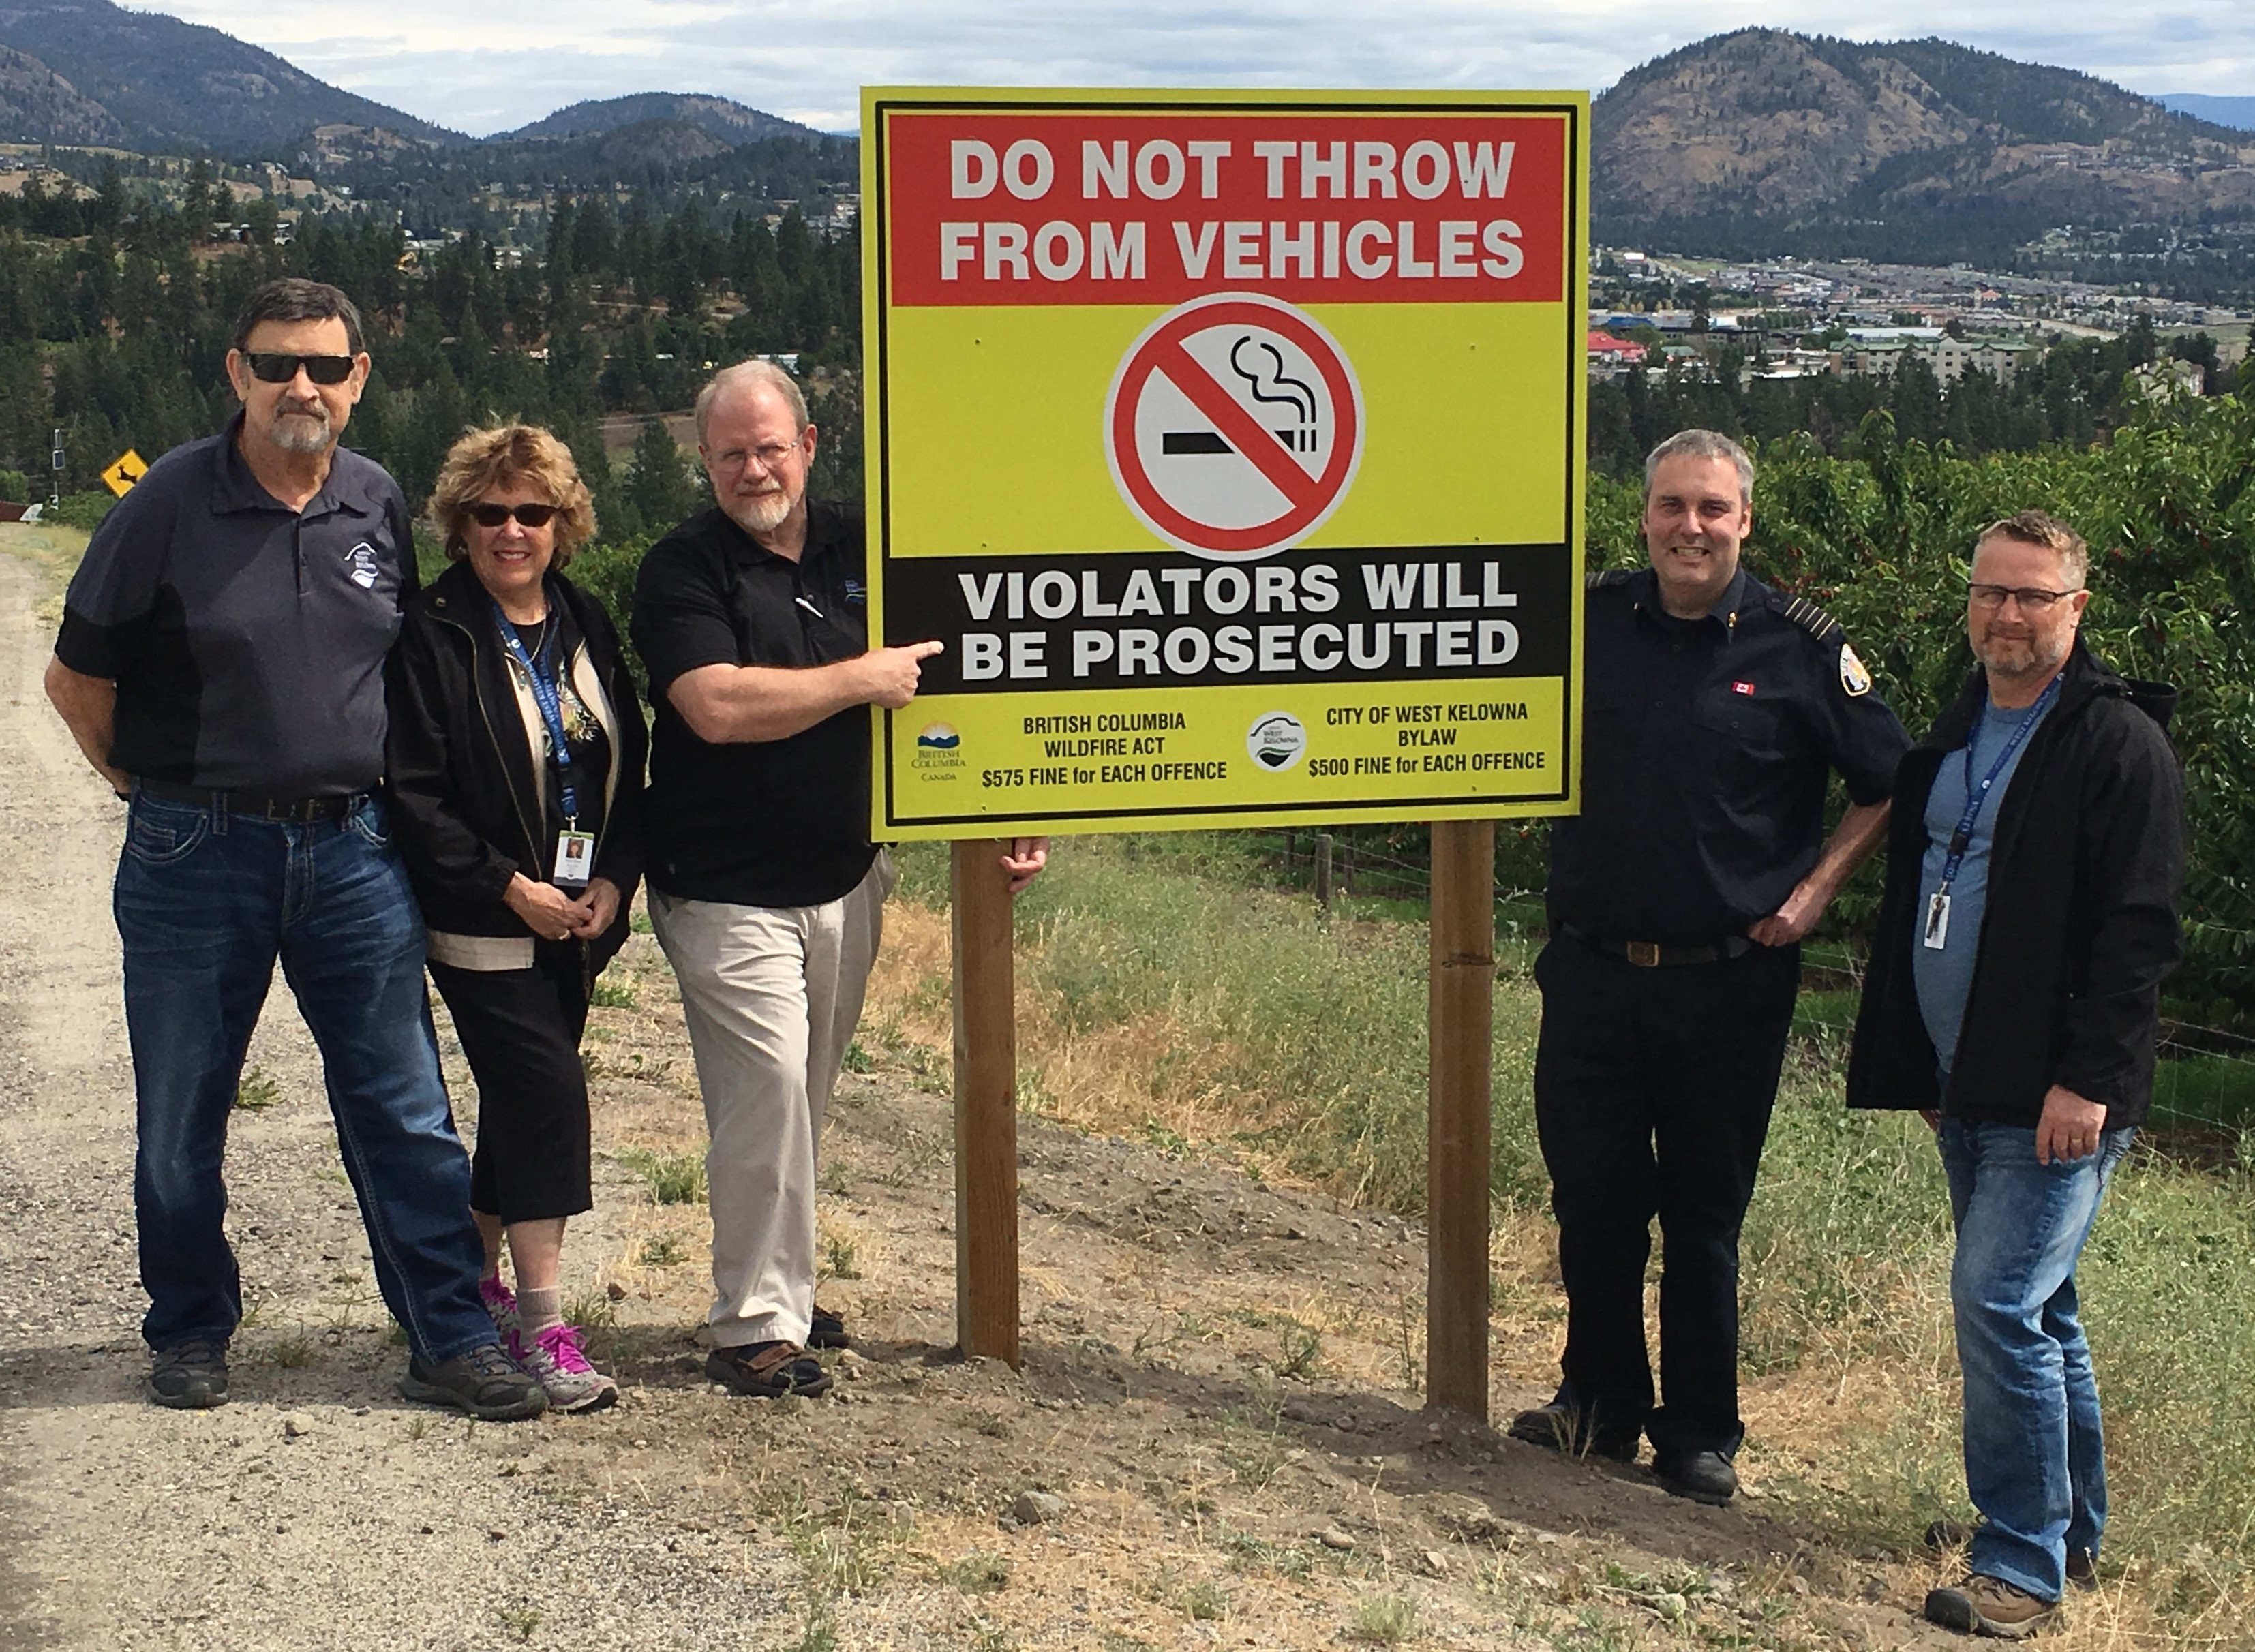 CWK - New Road Signs Discourage Flicked Cigarettes